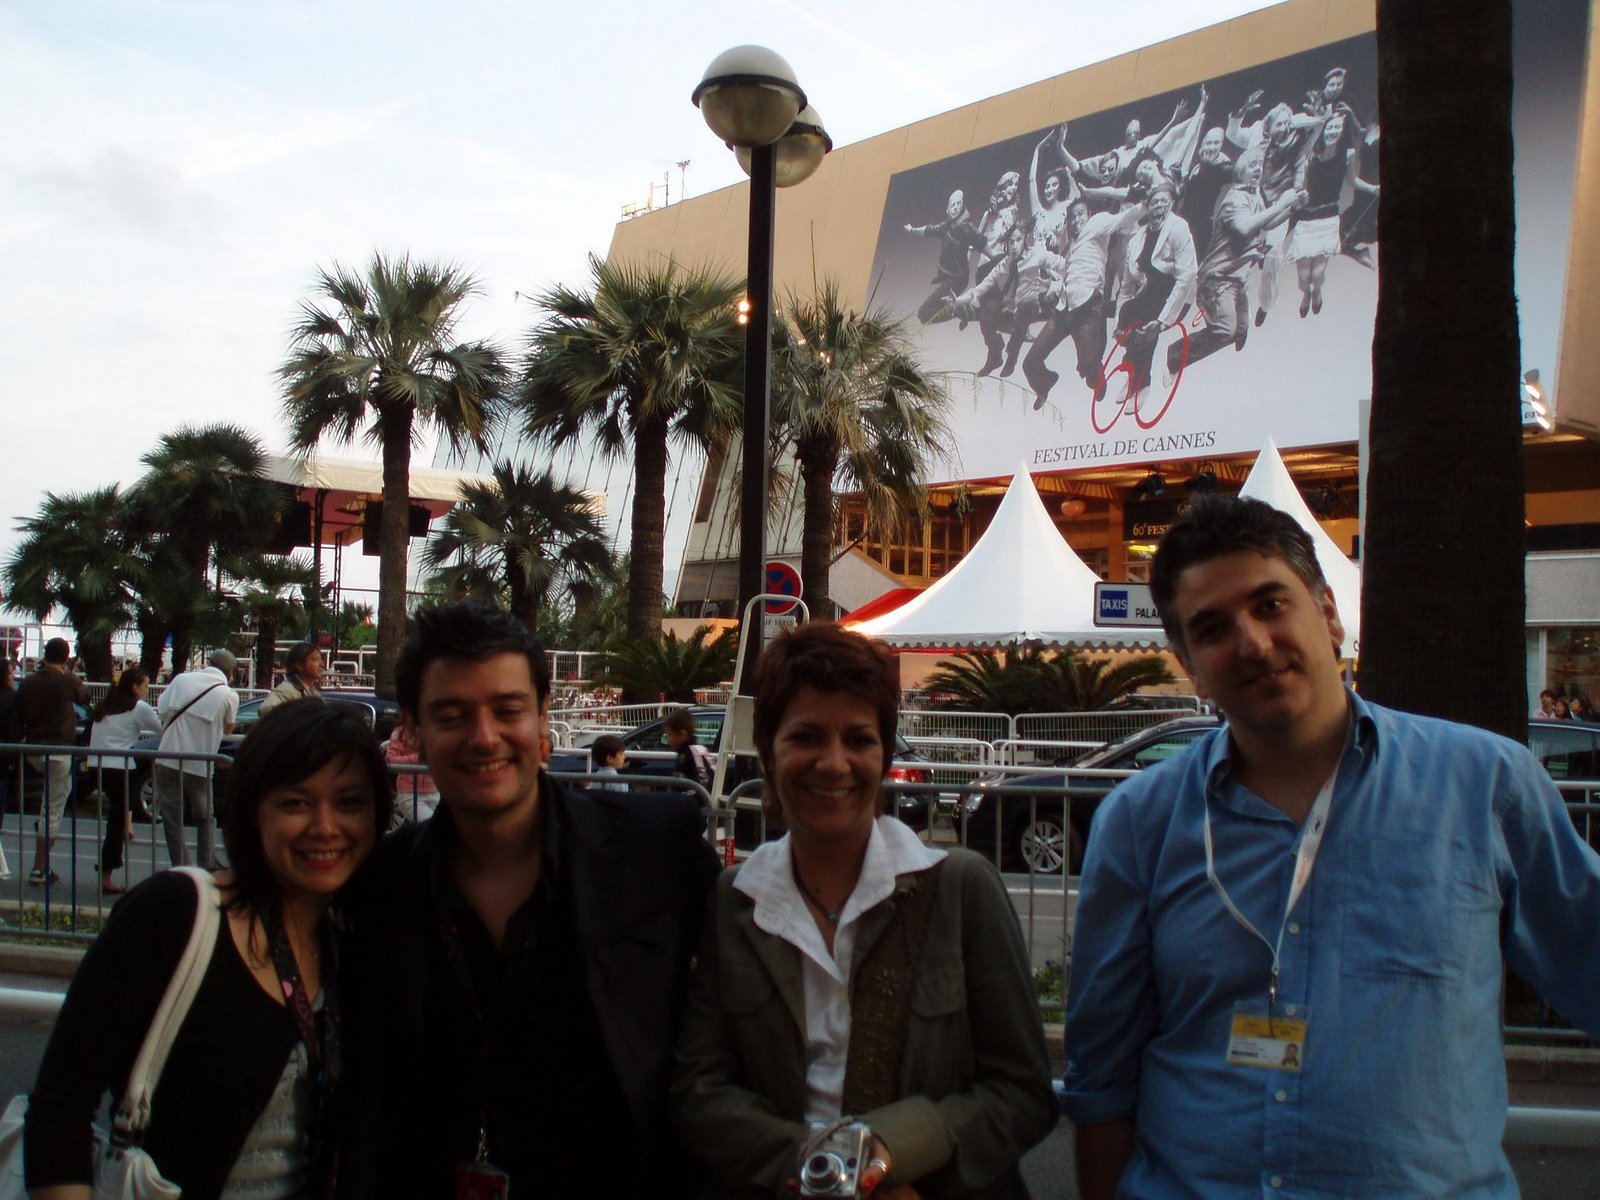 [seven+cannes+2.jpg]